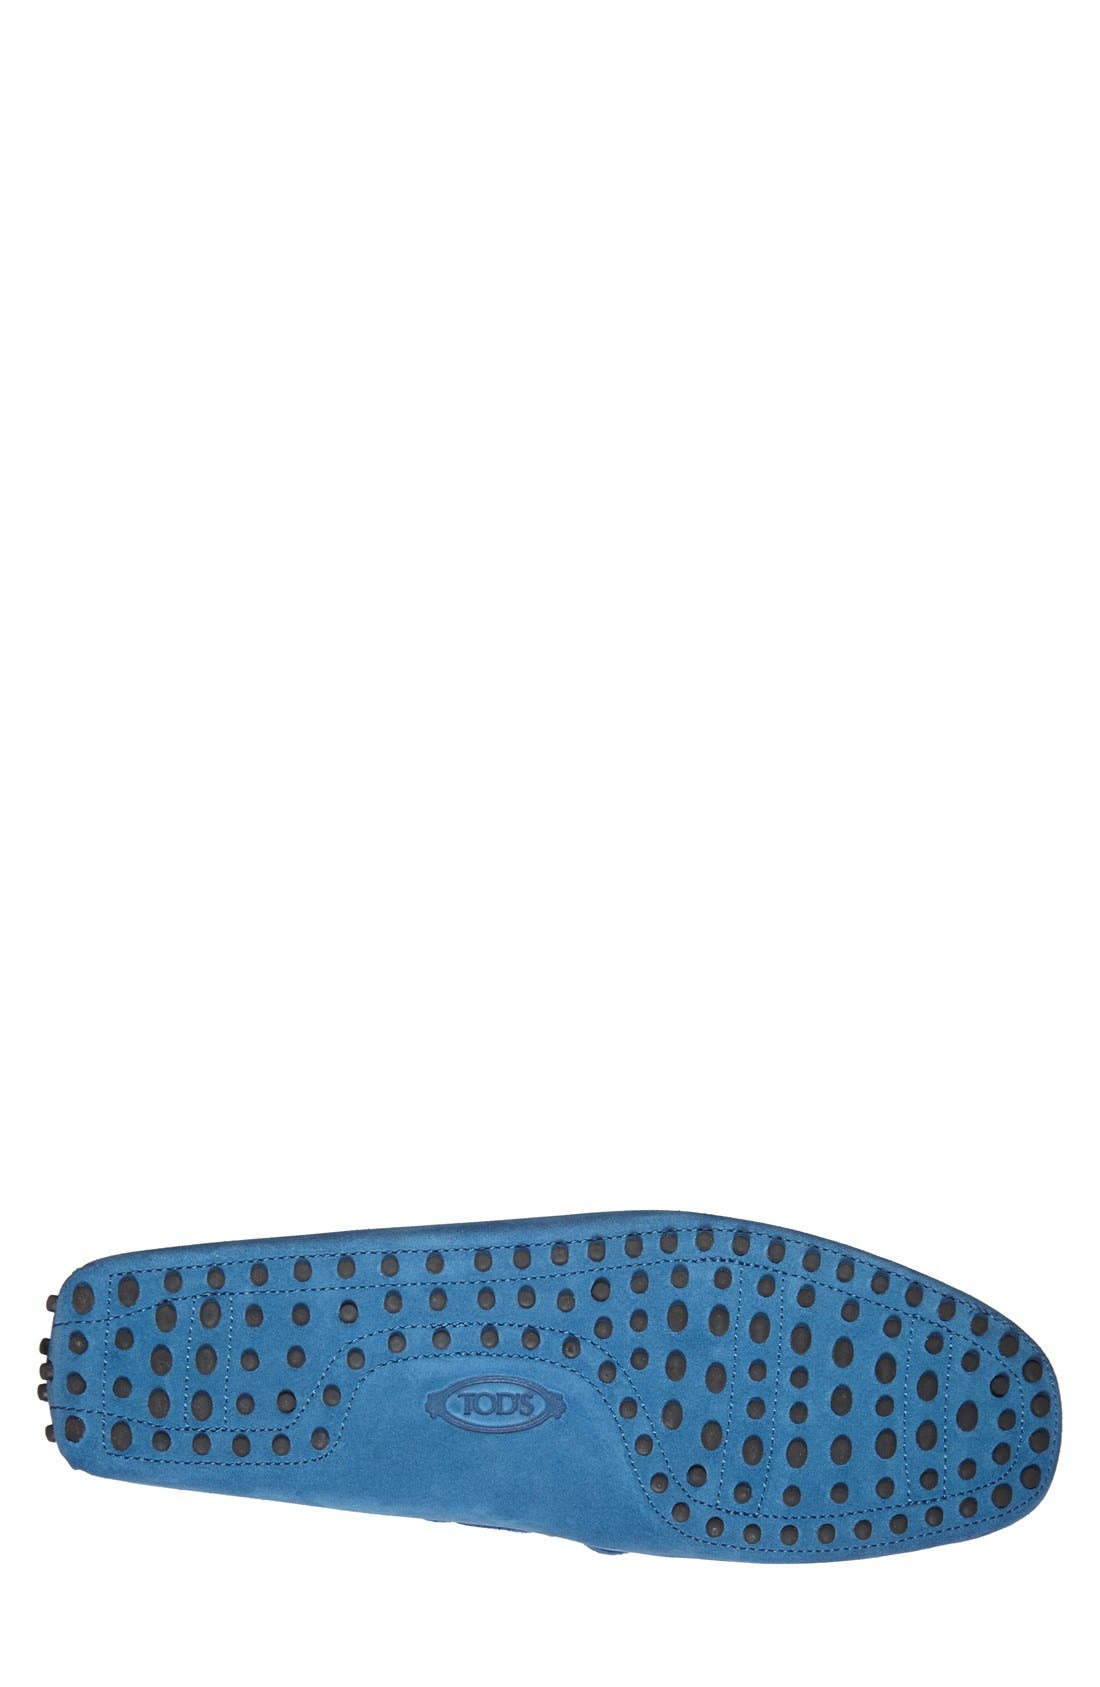 Gommini Tie Front Driving Moccasin,                             Alternate thumbnail 34, color,